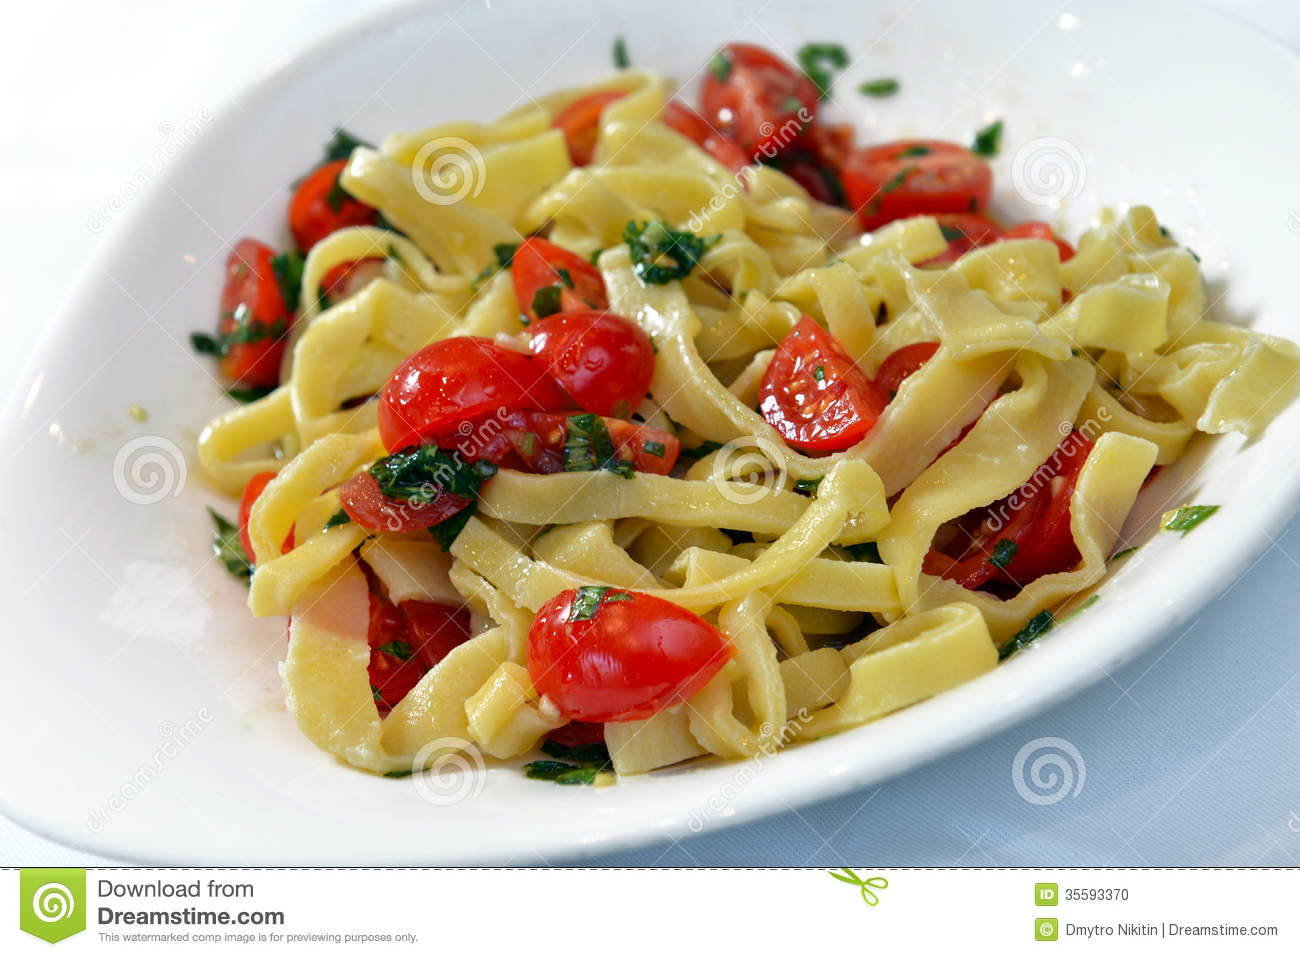 Pasta With Cherry Tomatoes And Basil Stock Photo - Image: 35593370